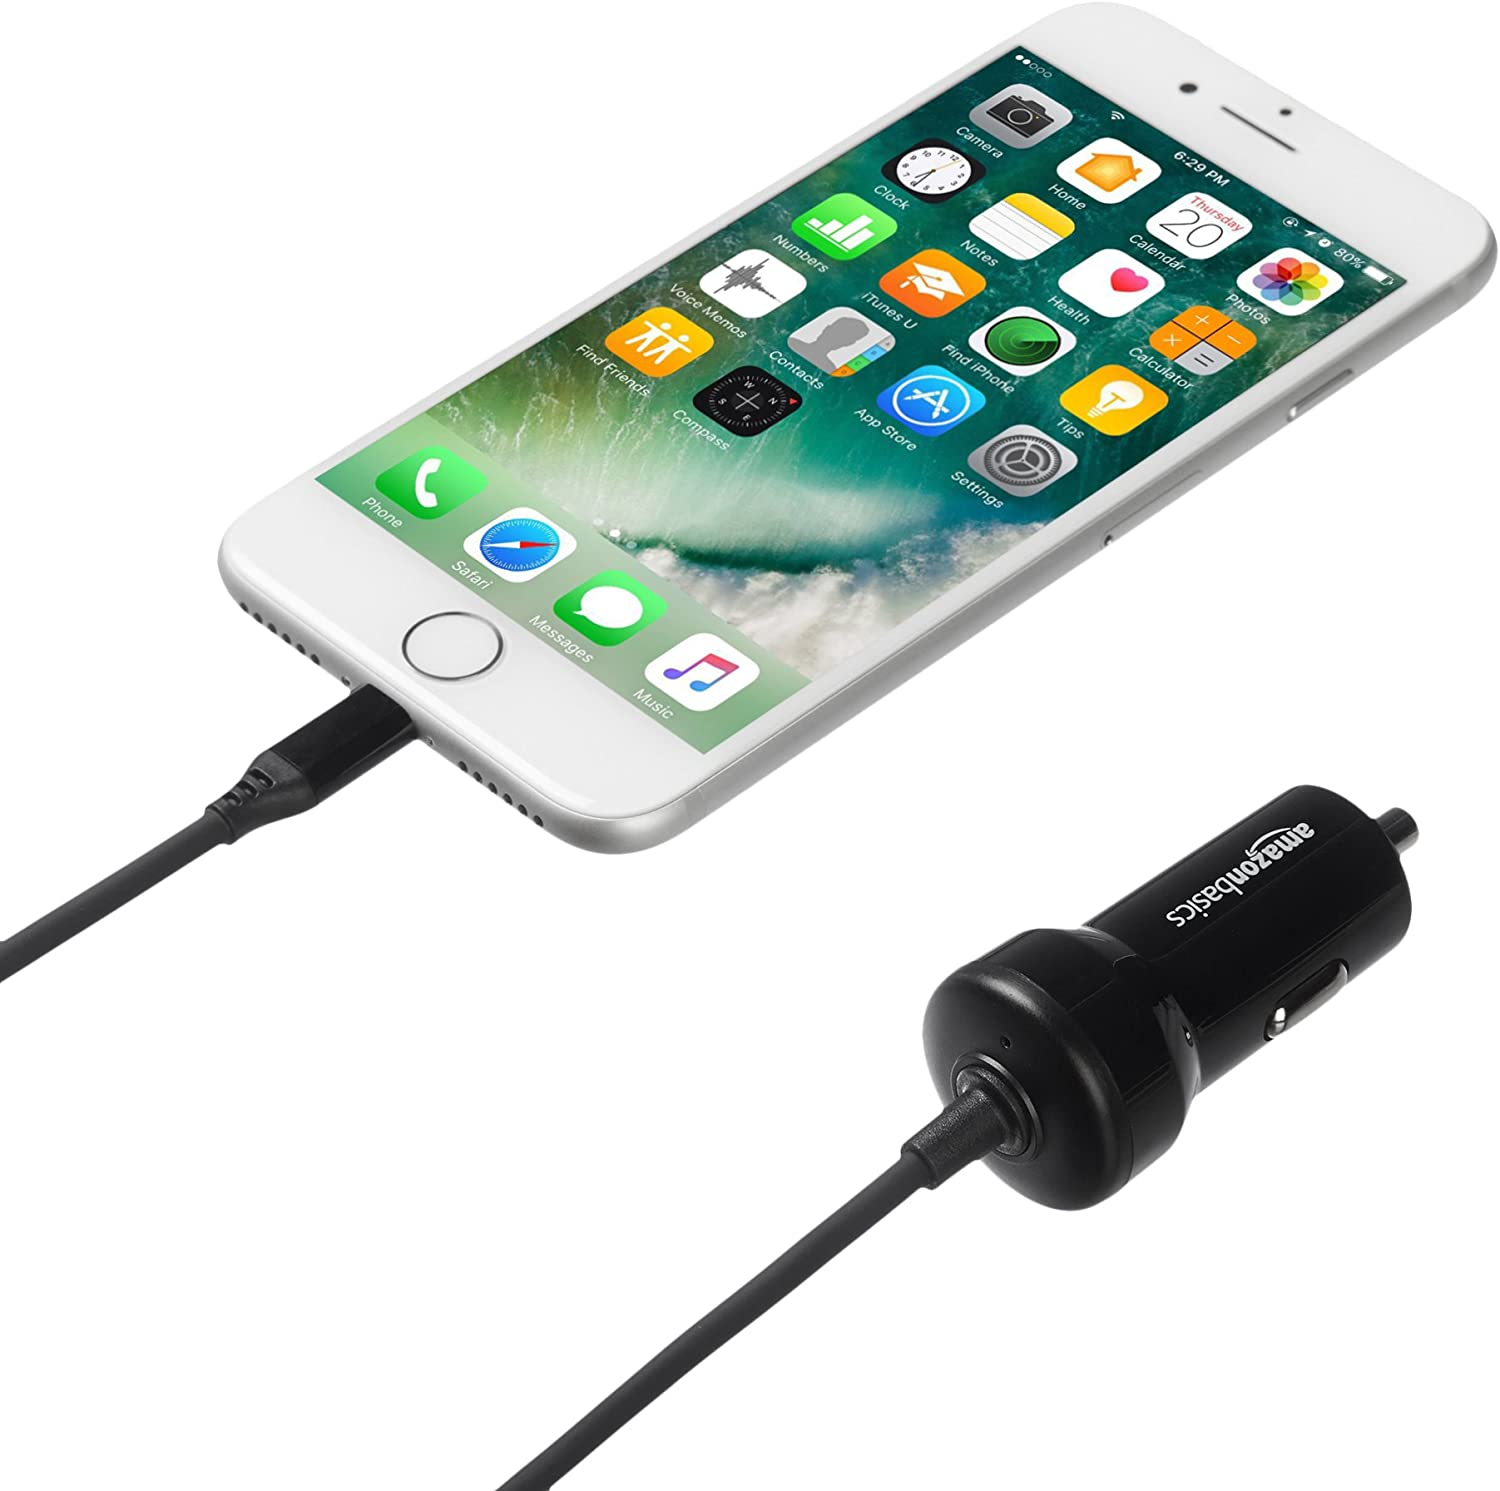 3-Foot Basics Straight Cable Lightning Car Charger 5-Pack 5V 12W Black